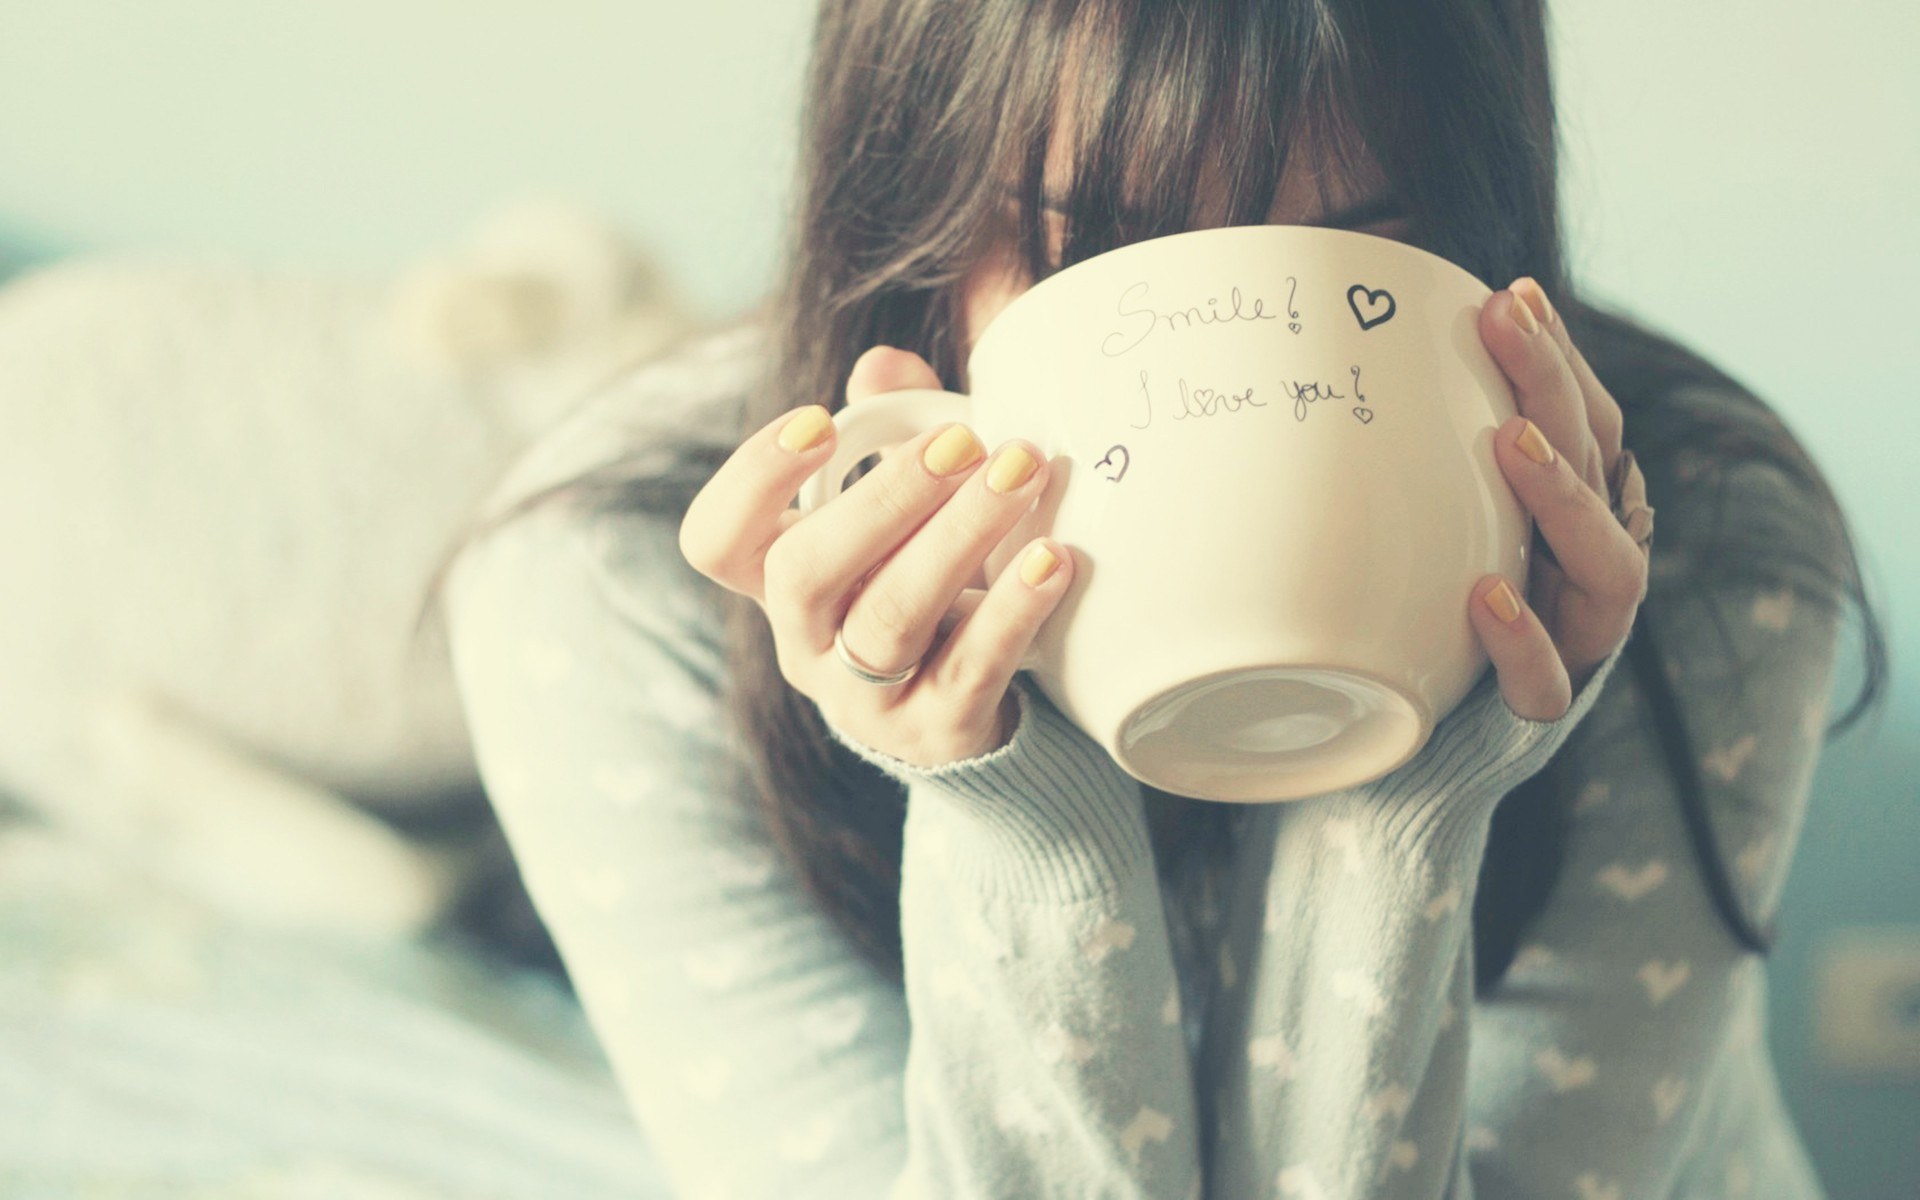 Vintage Iphone Wallpaper Girl Drinking From Big Cup Wallpapers Girl Drinking From